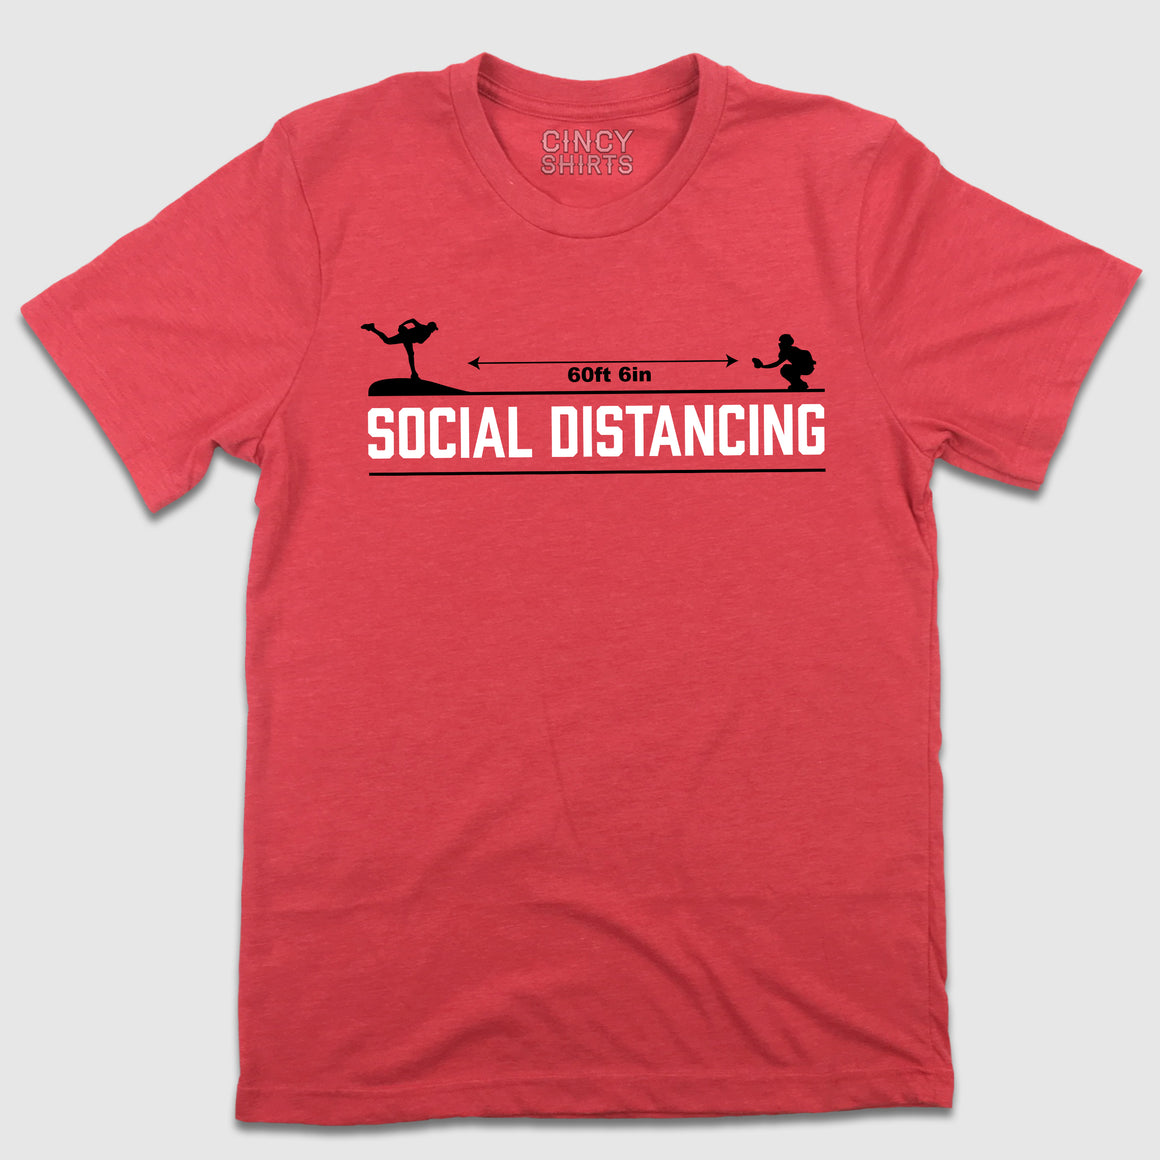 Social Distancing 60 Feet 6 Inches